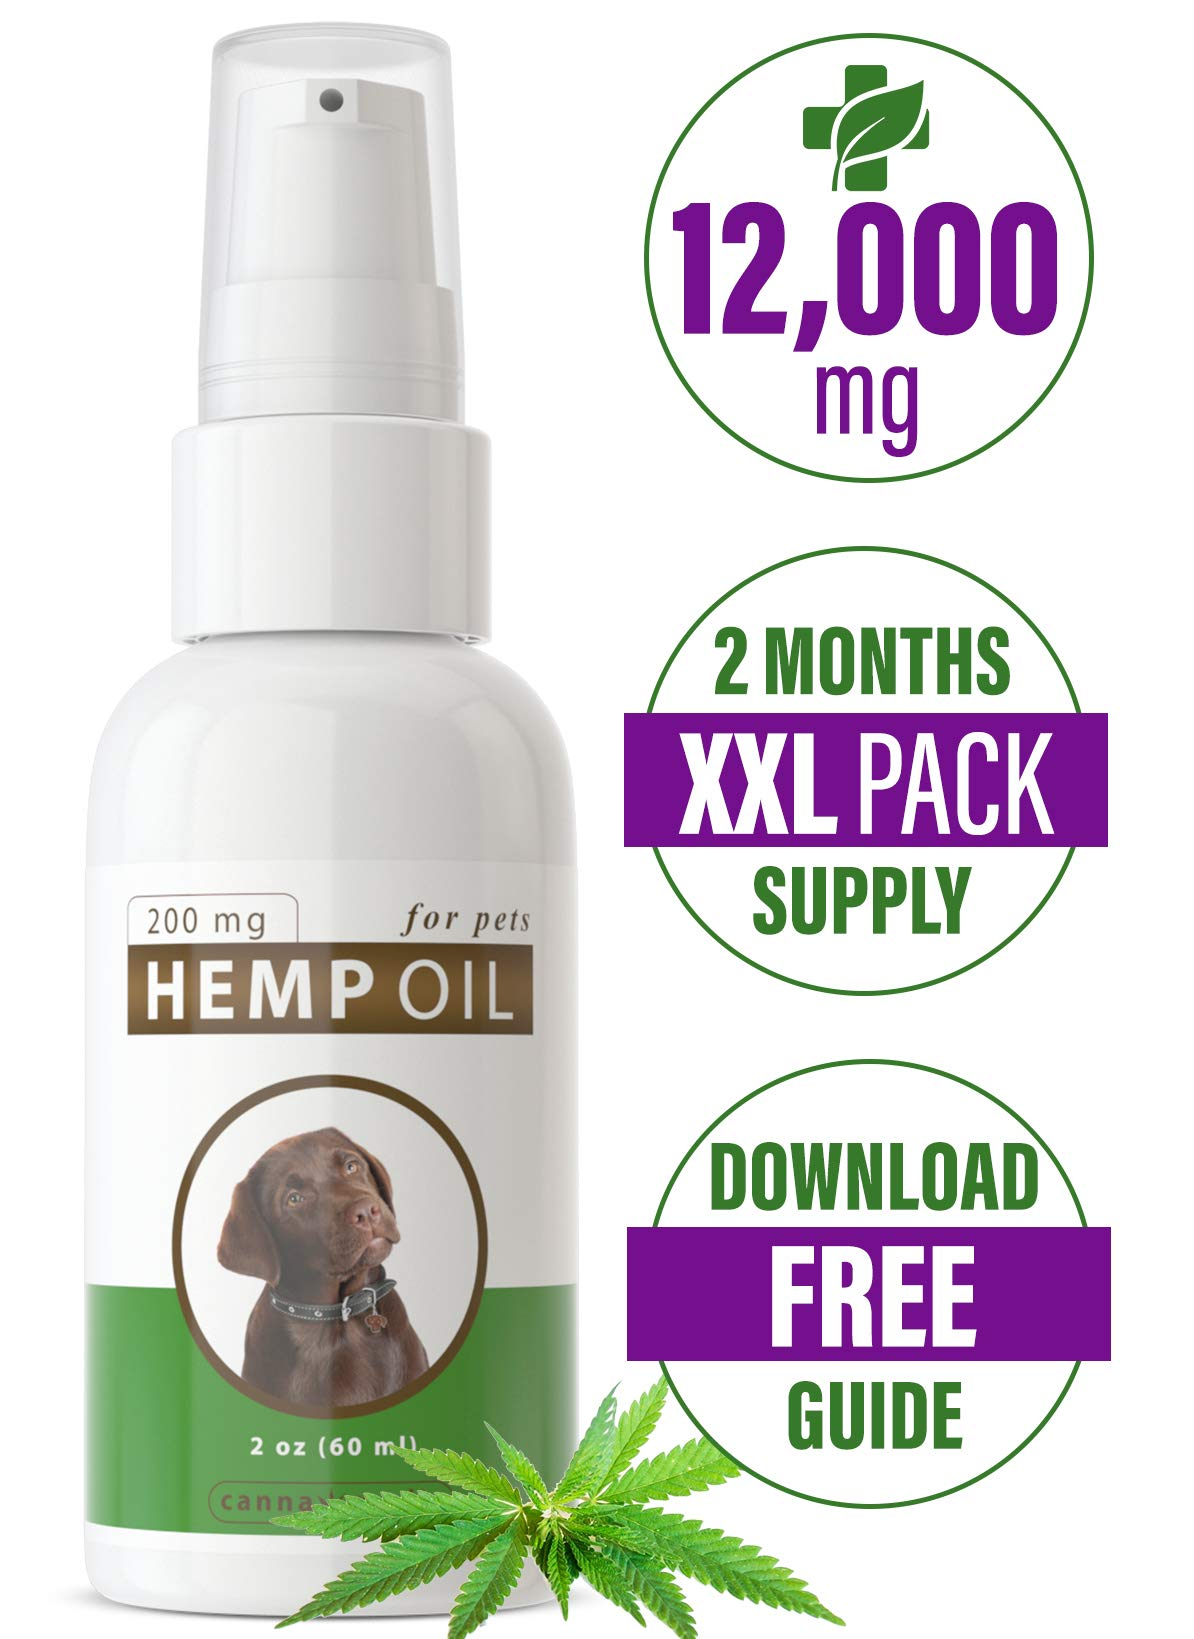 Canna Medis Premium Hemp Oil for Dogs with Cancer, Anxiety, Arthritis, Pain, Seizures, Inflammation. 2 oz, Concentrated Cannabis Extract, 200 mg Per Dose, for Up to 2 Months, 100% Pure, Fast Results. by Canna Medis